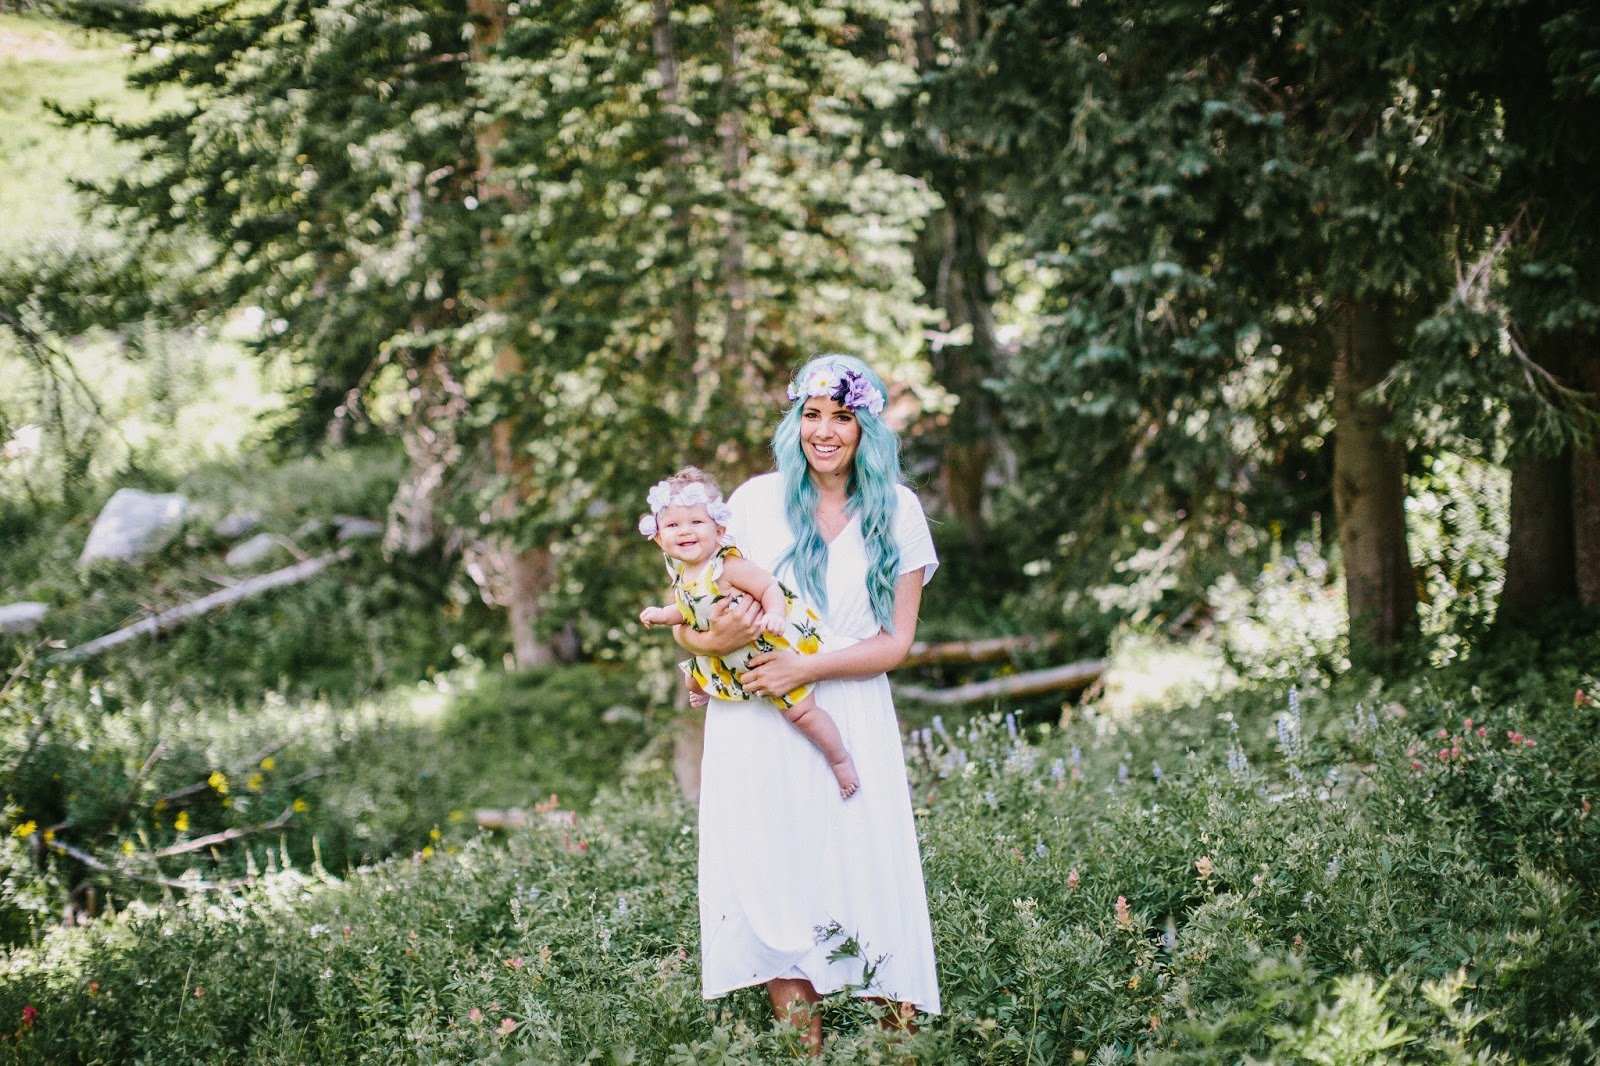 Blue Hair, Mommy and Me Photoshoot, Floral Crown